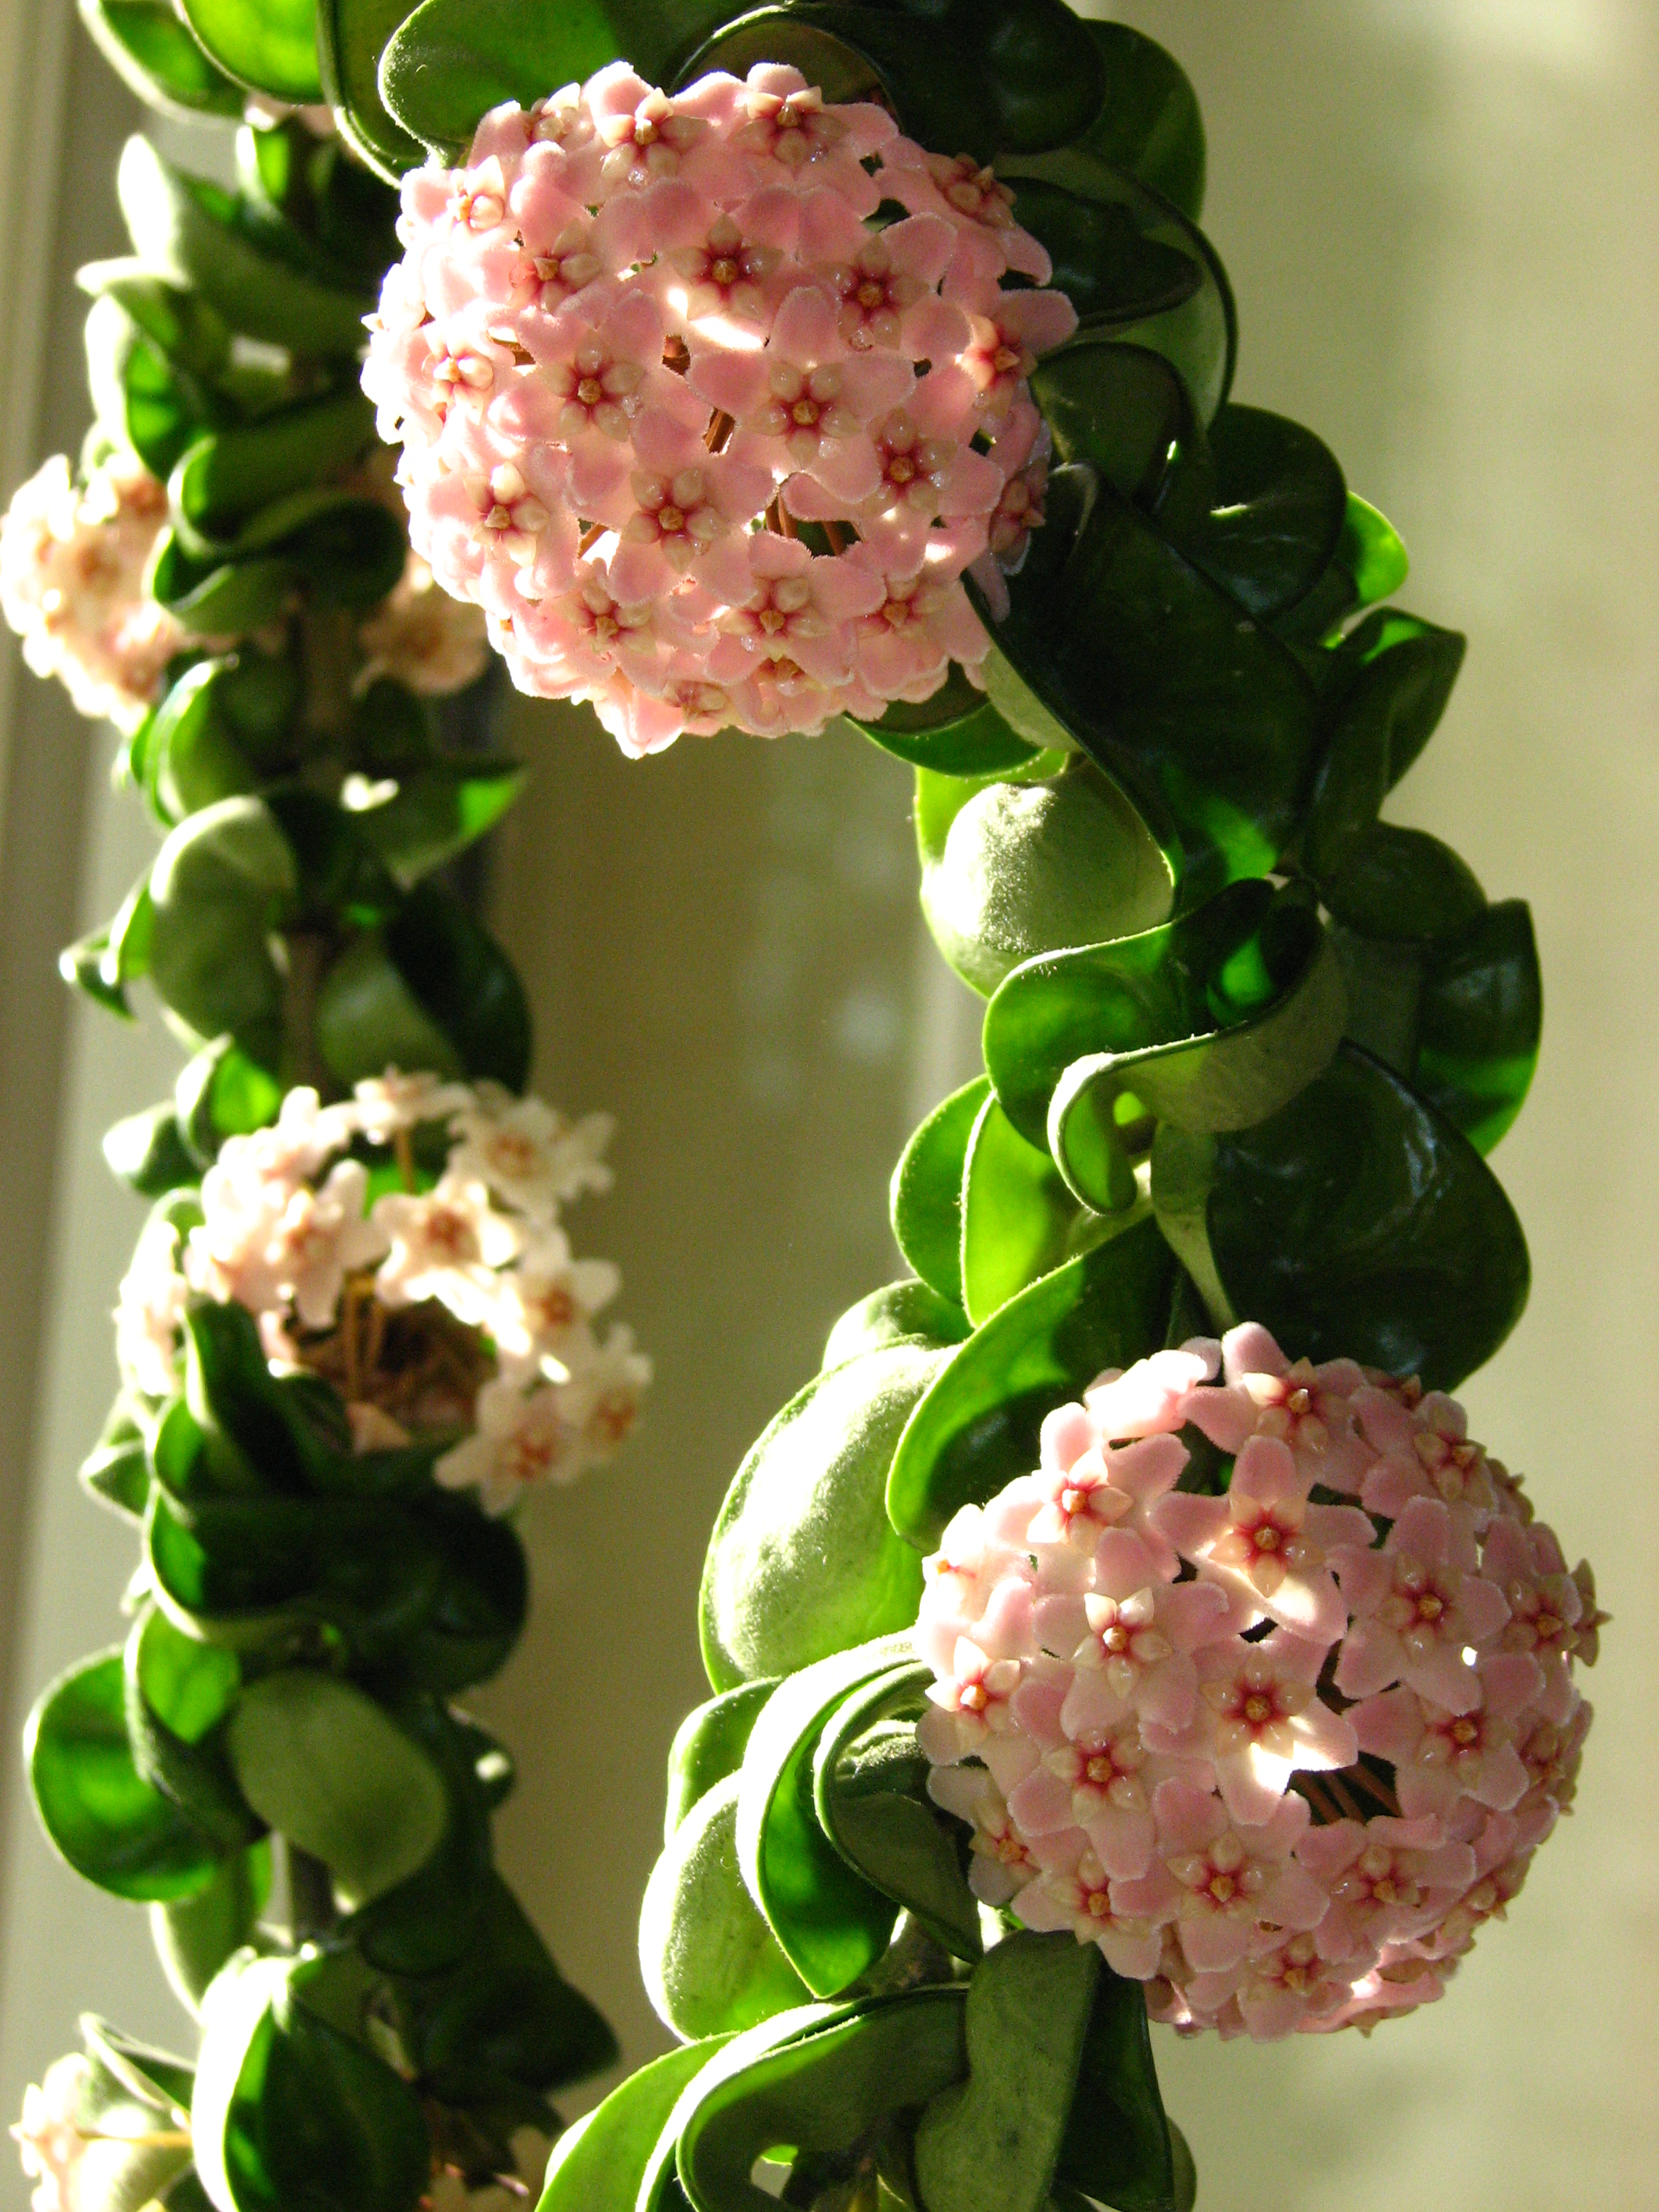 Hoya Compacta Hindu Rope Tropics At Home